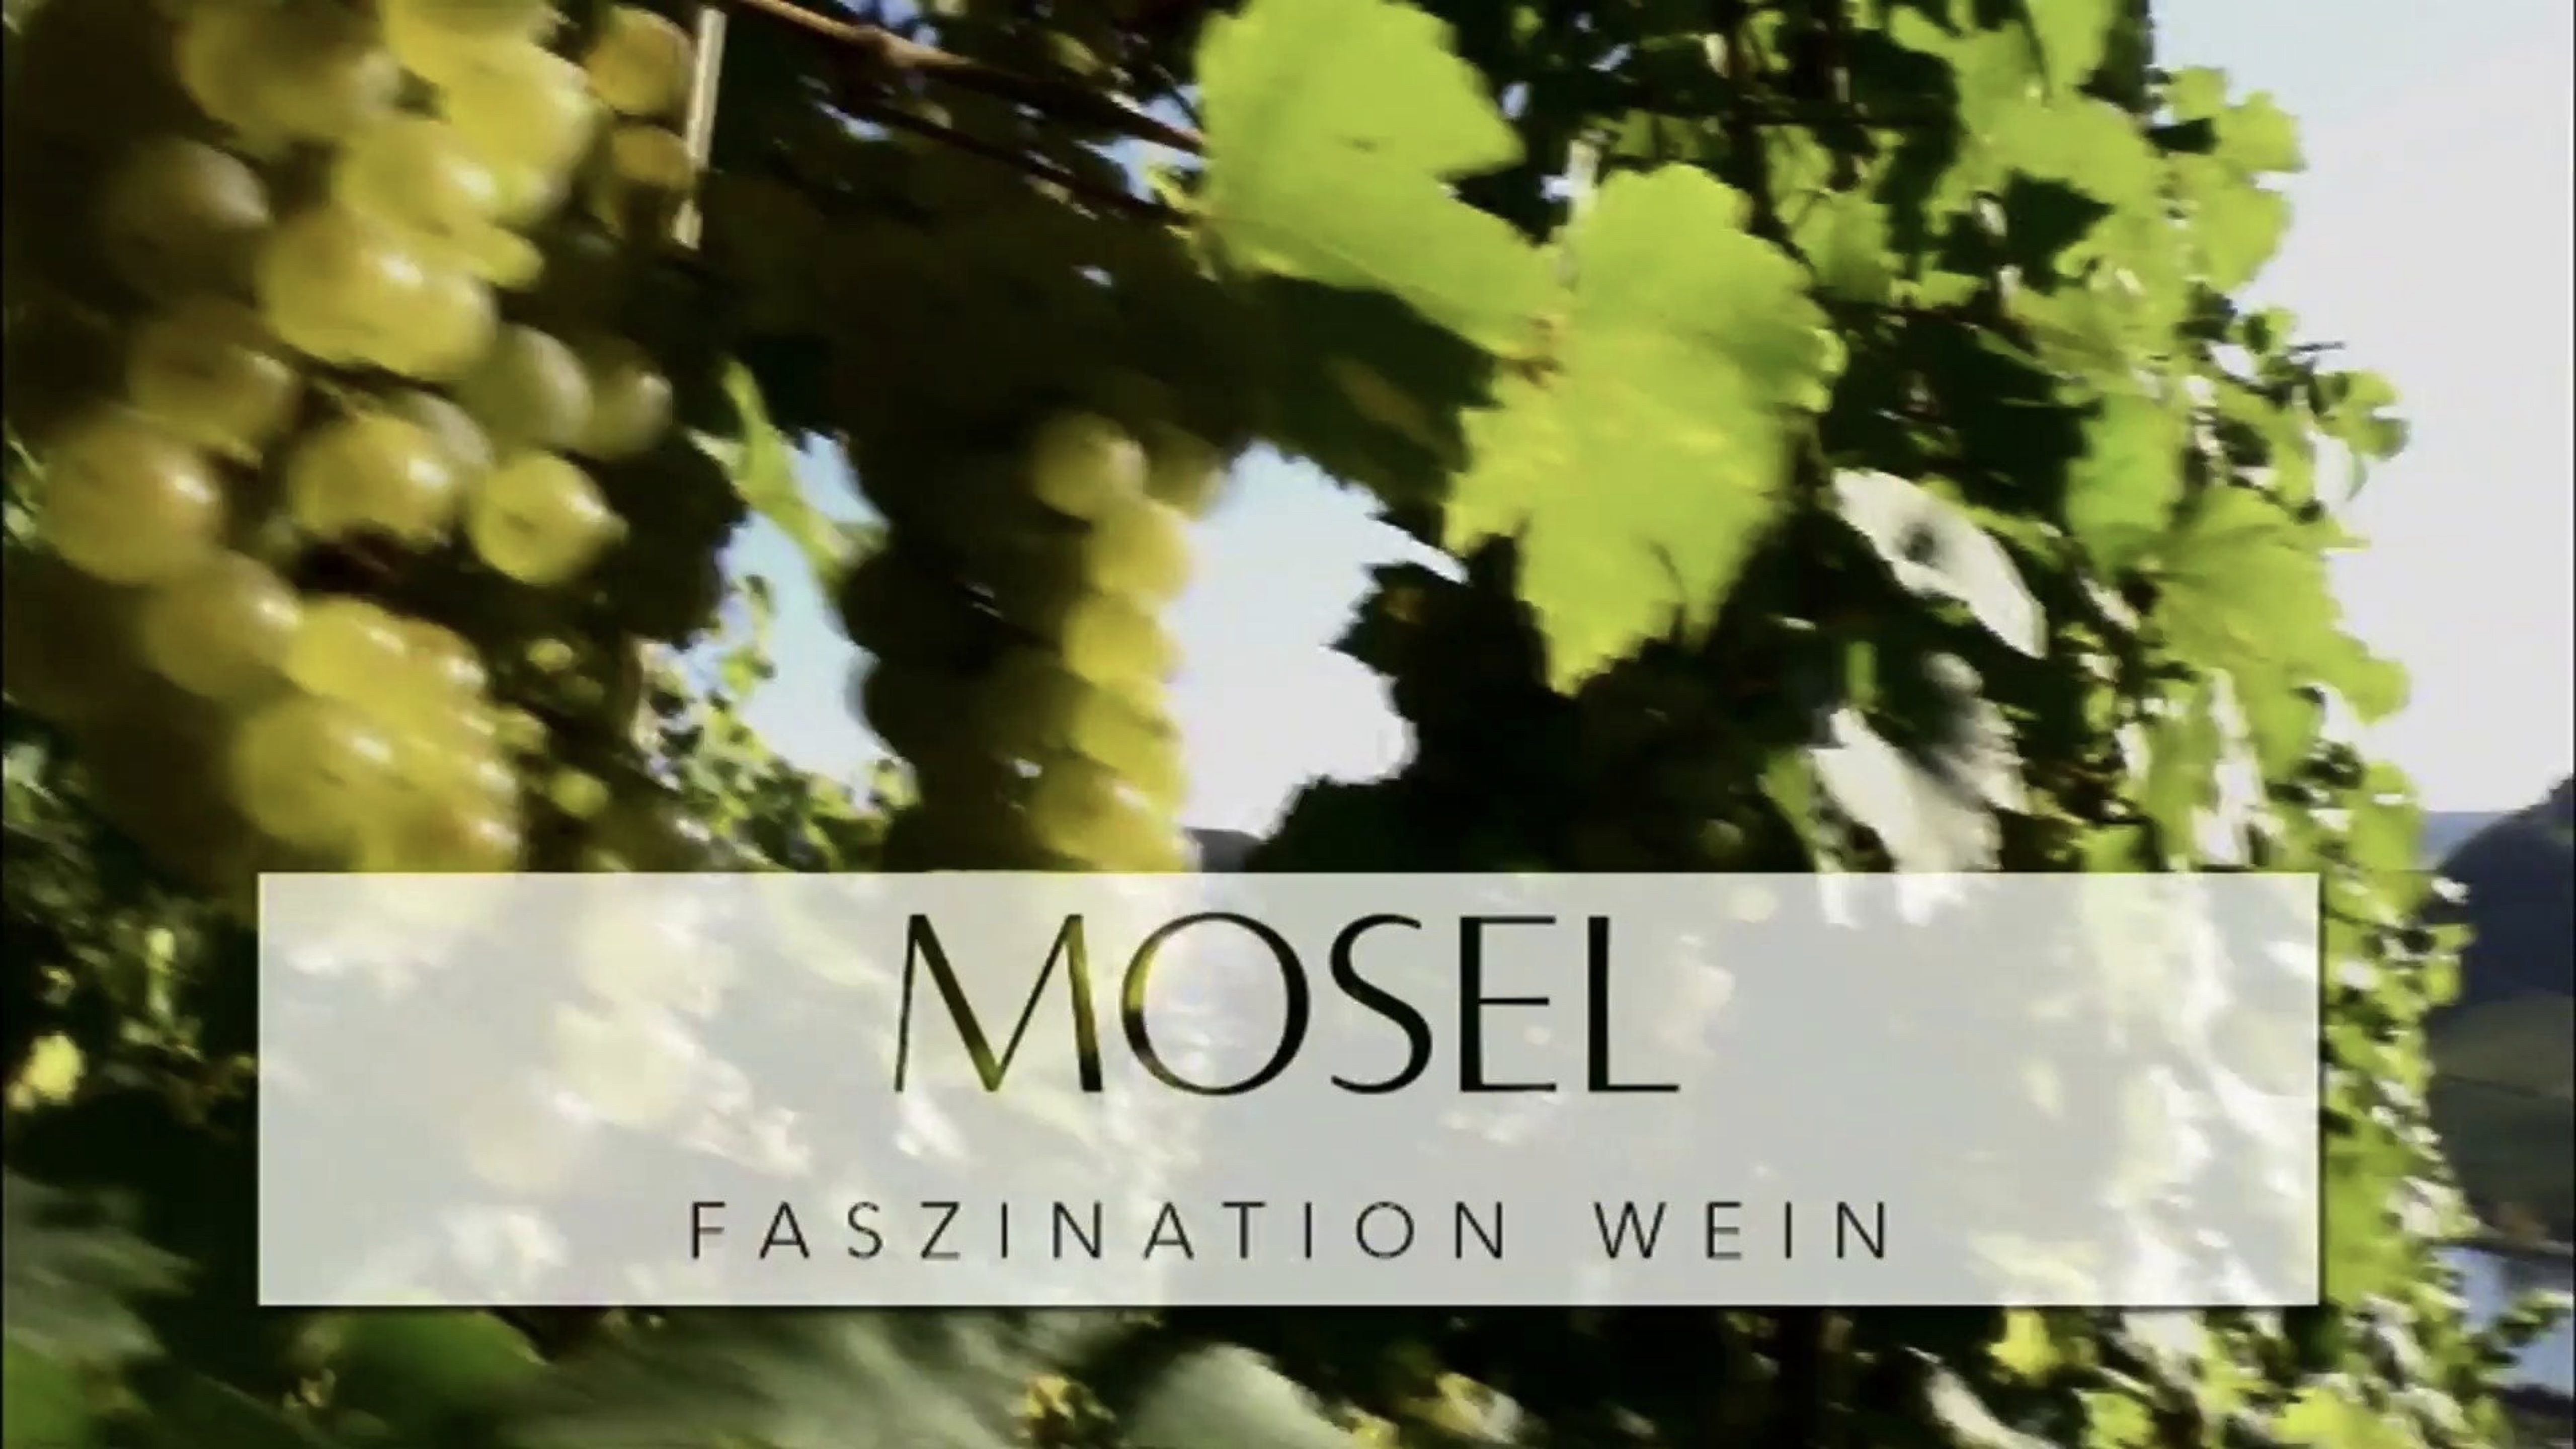 The southern Weinmosel